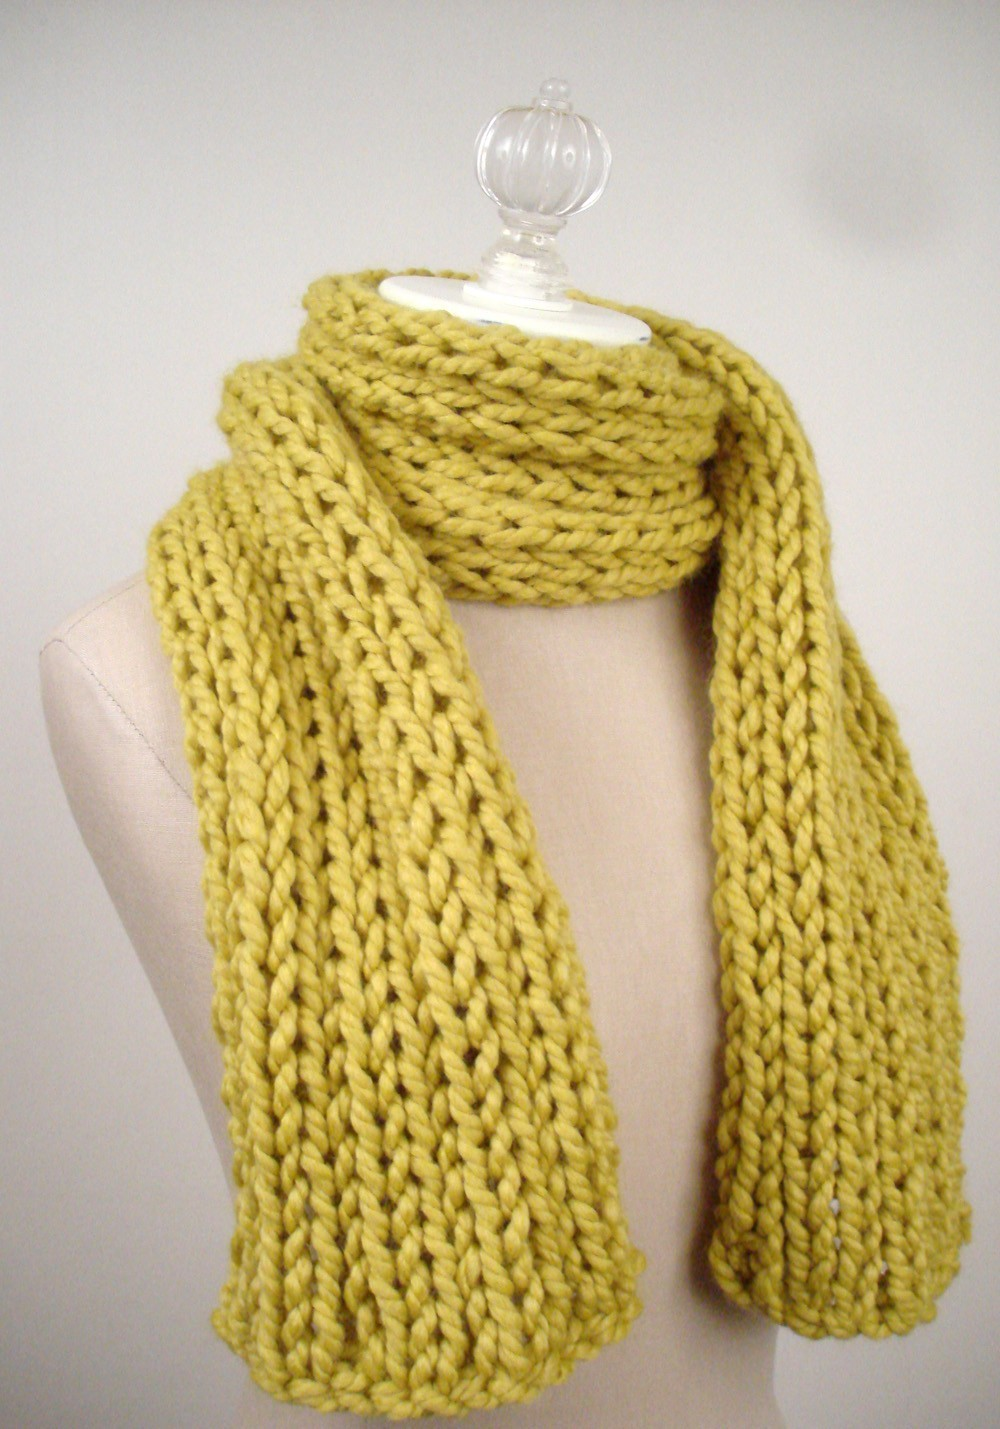 Free Knitting Patterns For Mens Scarves : Scarf Knitting Patterns A Knitting Blog